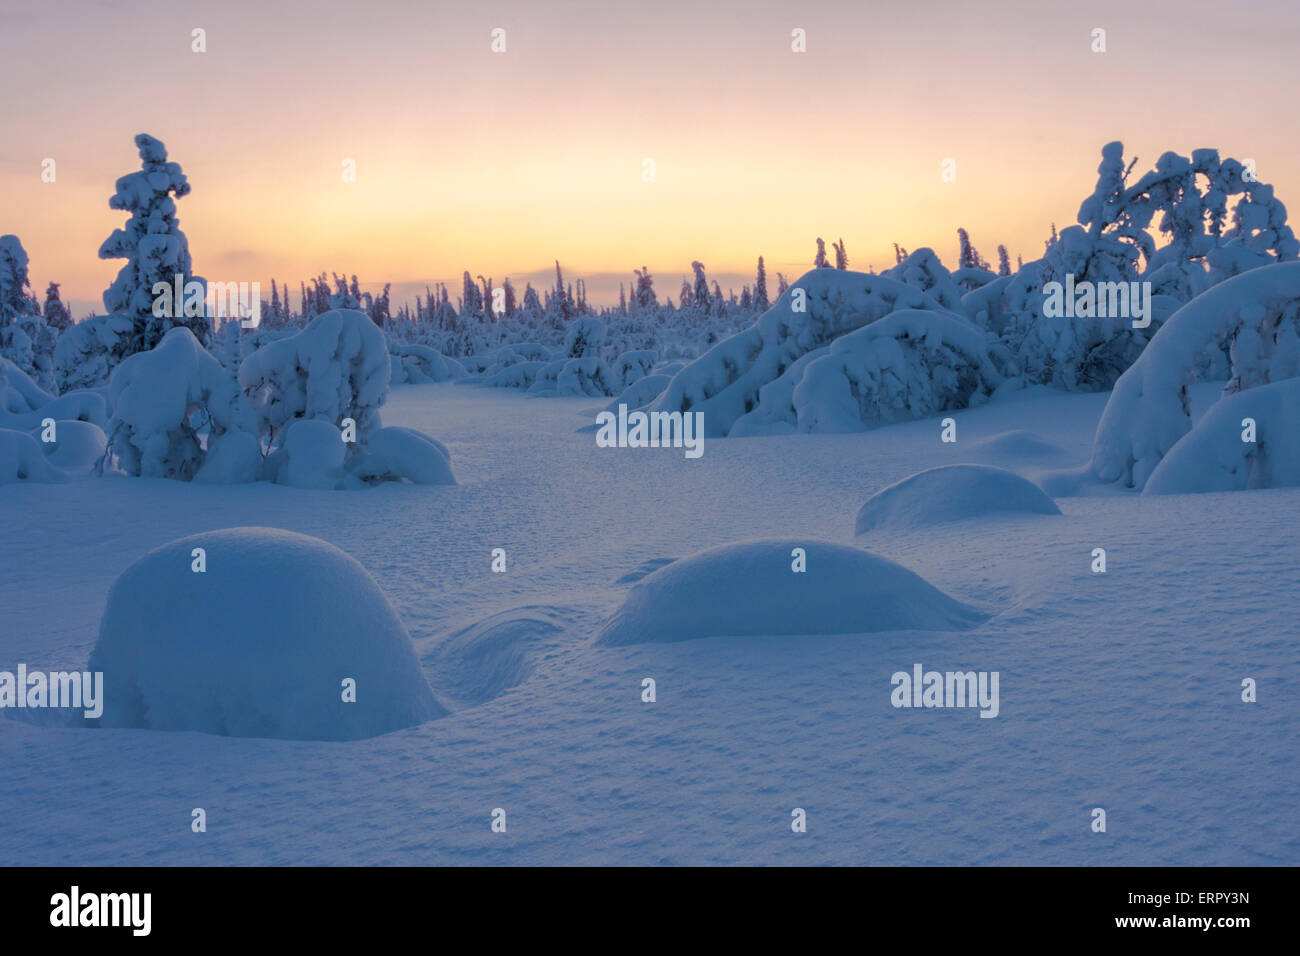 Winter landscape with snowy trees and clear blue sky in sunset in Gällivare, Swedish lapland, Sweden - Stock Image